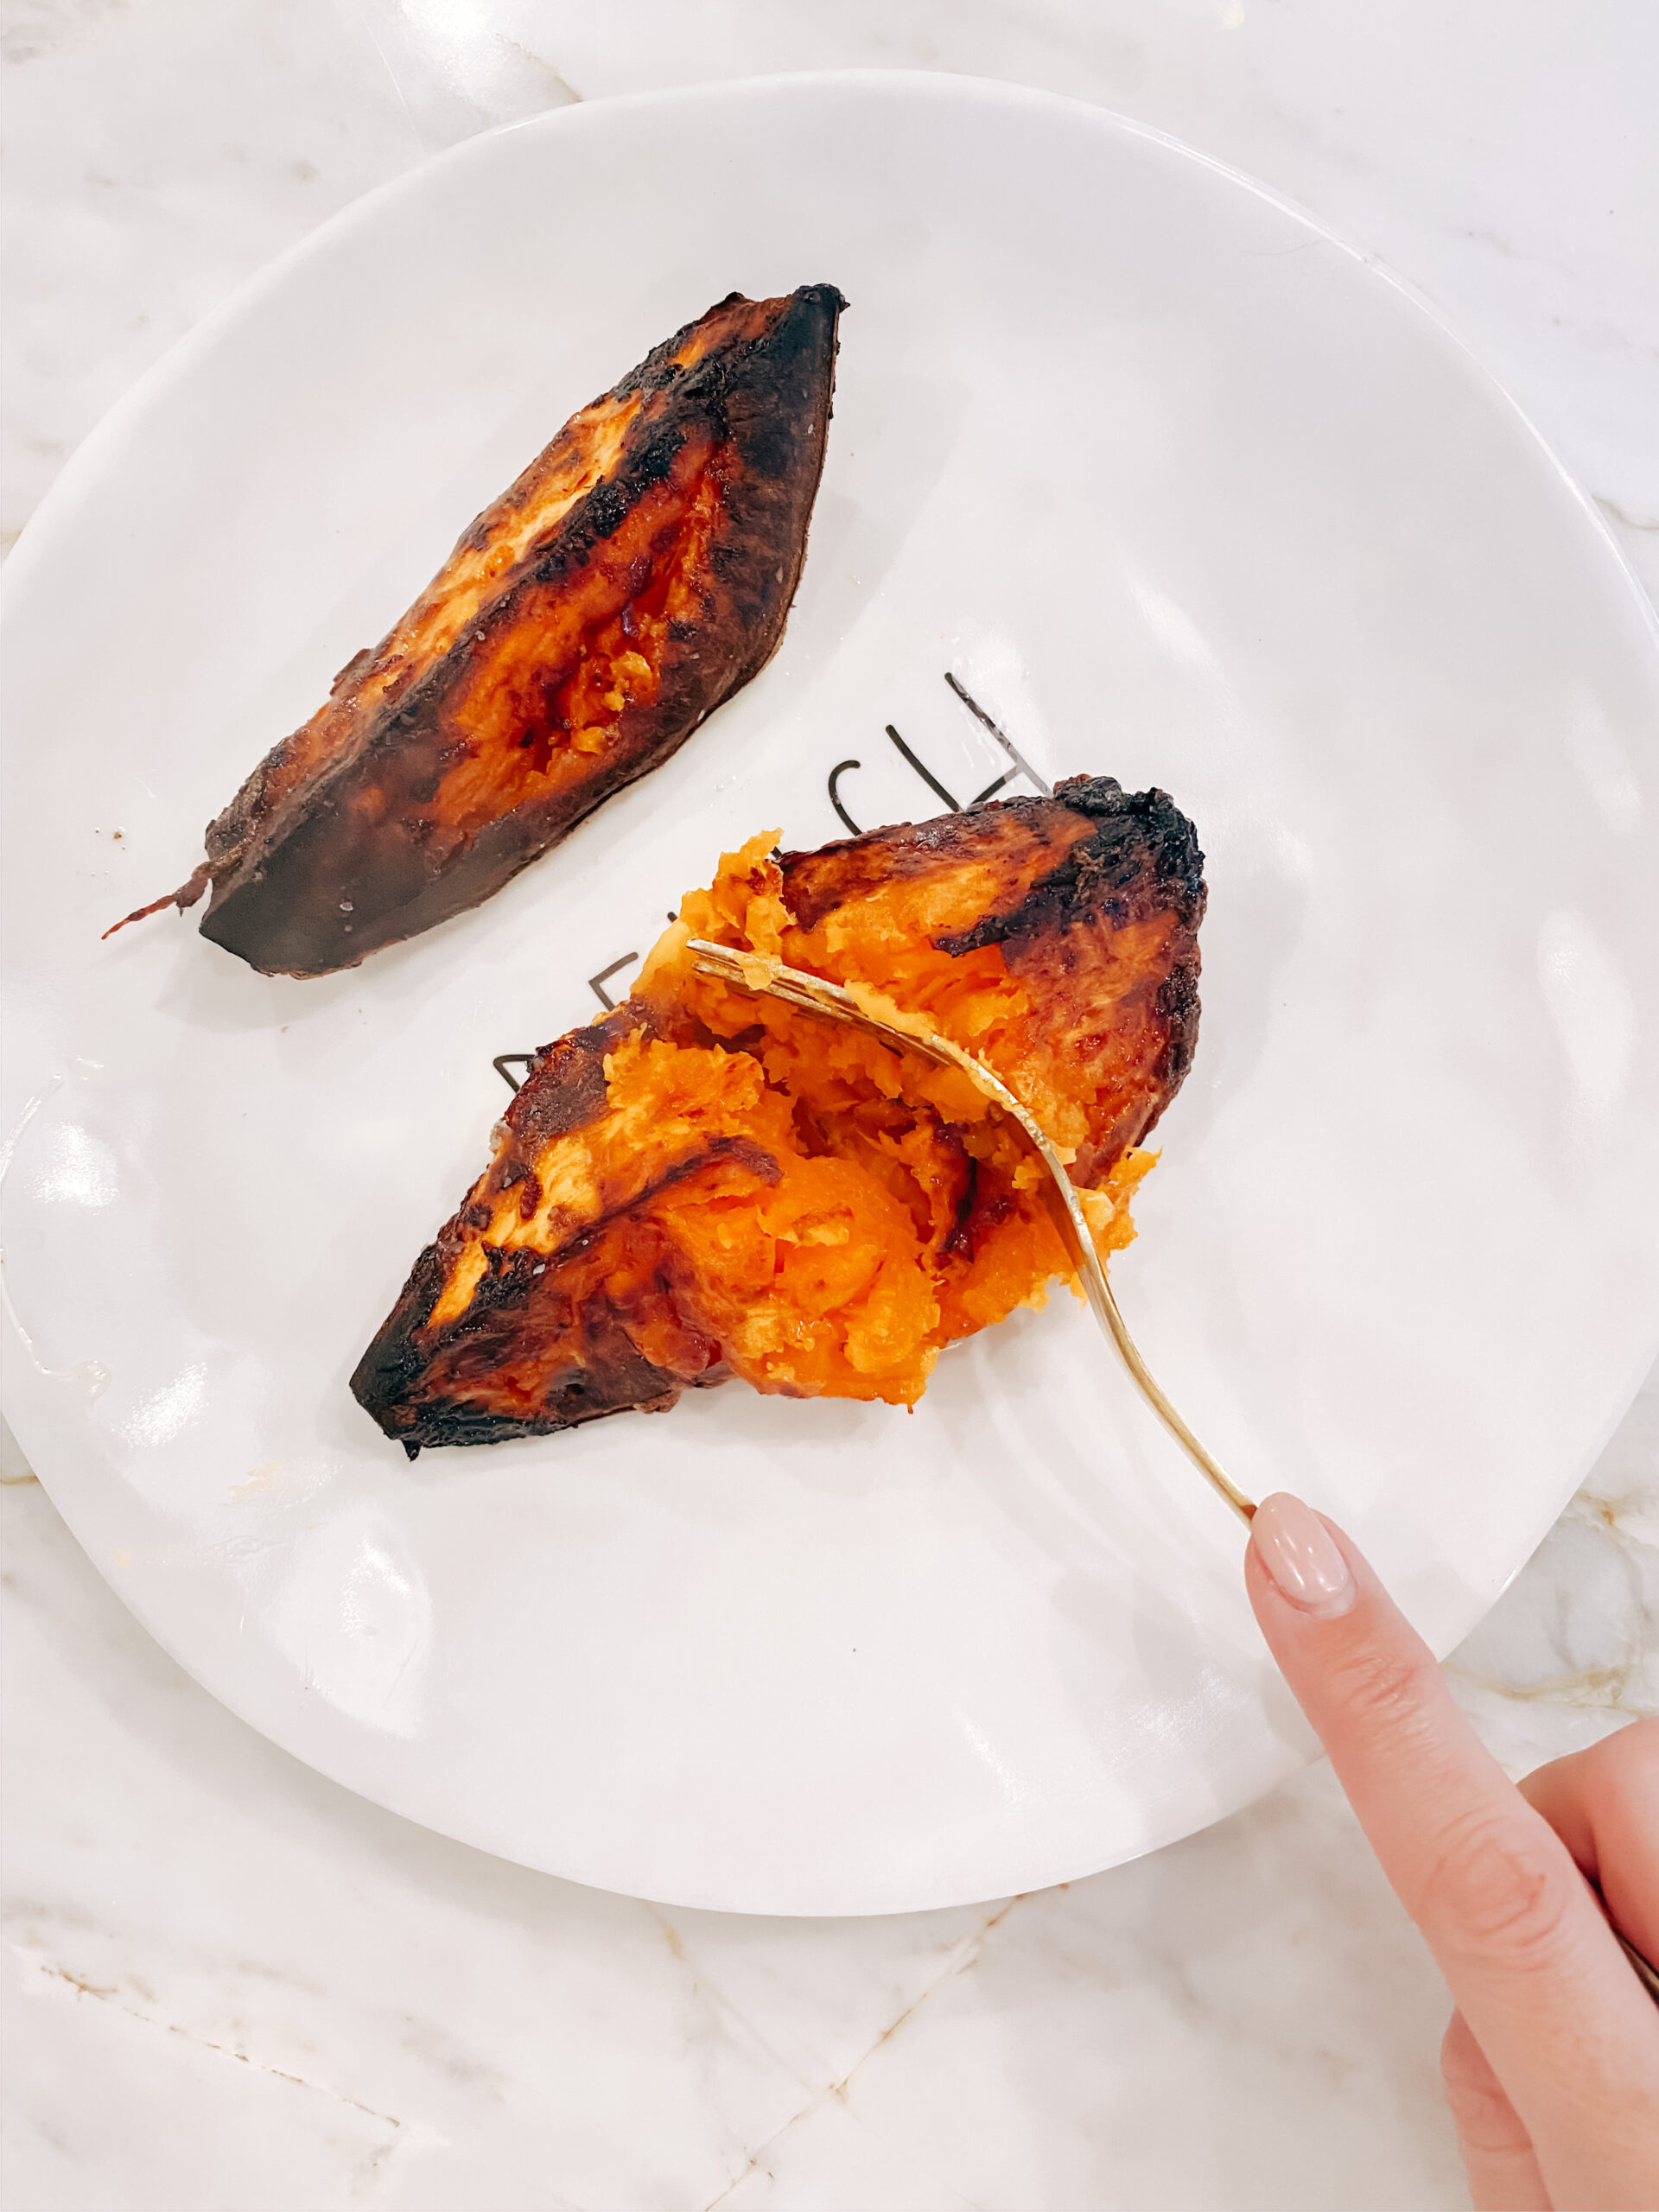 Healthy & Delicious Roasted Sweet Potatoes